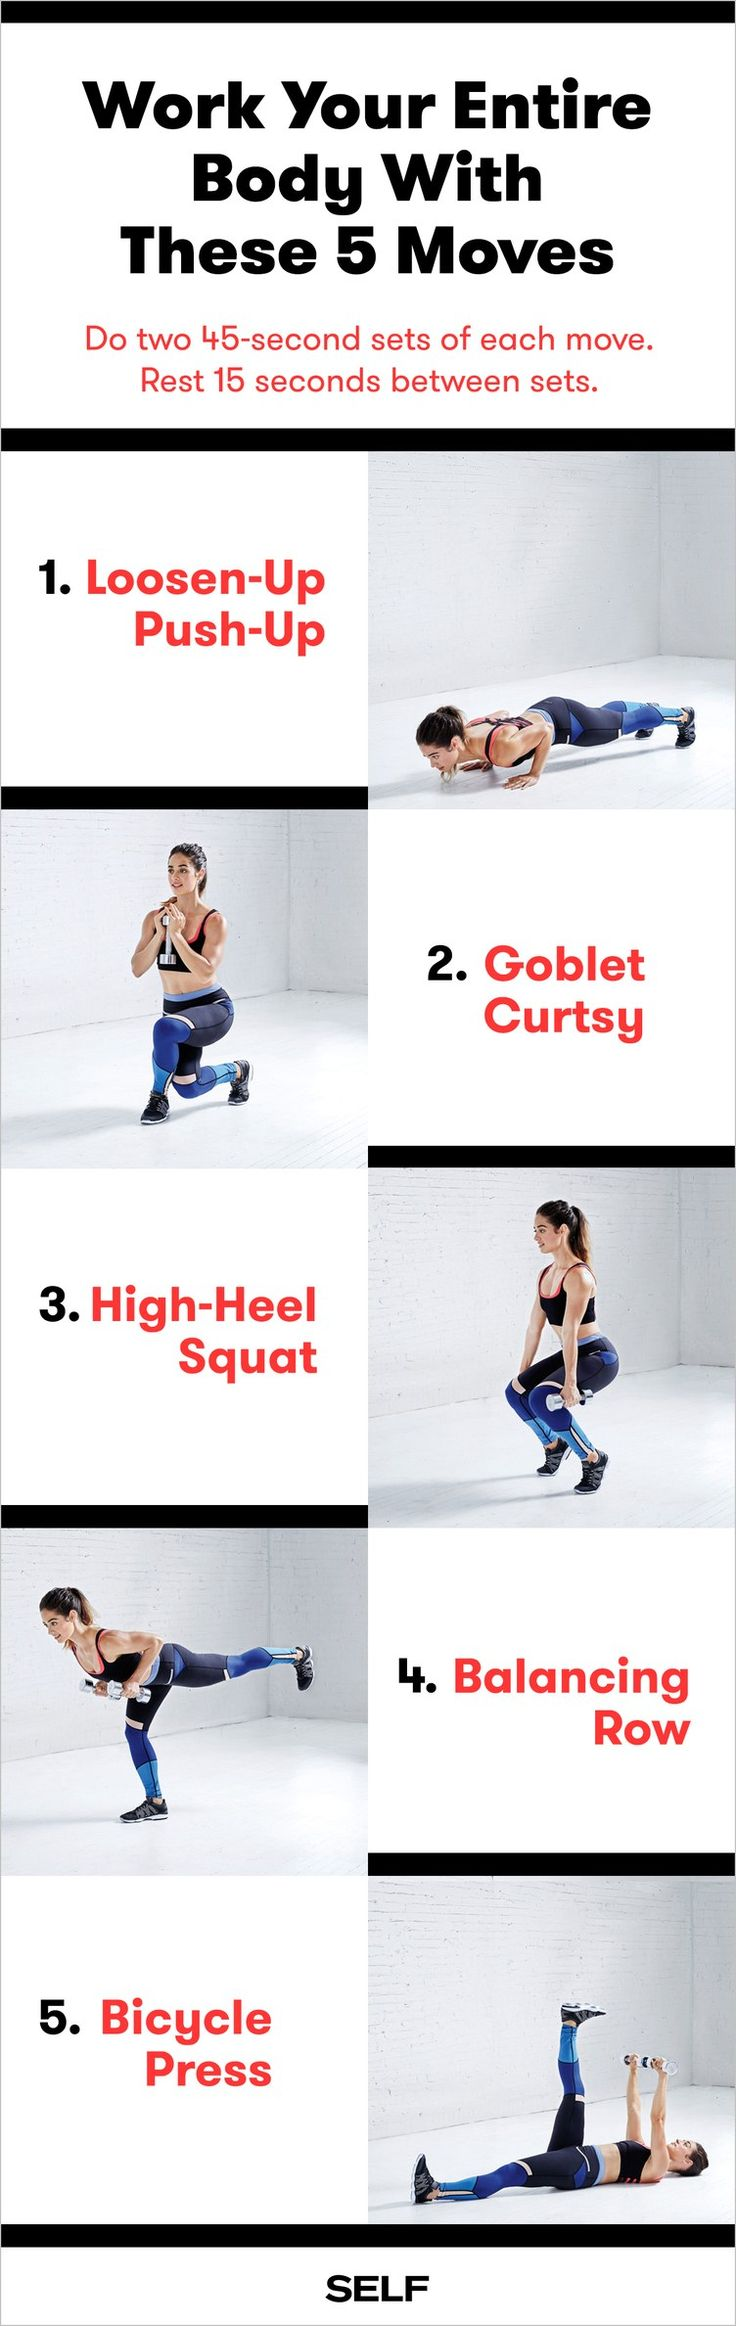 Sculpt all over in a flash with this quick total-body cardio and strength routine.